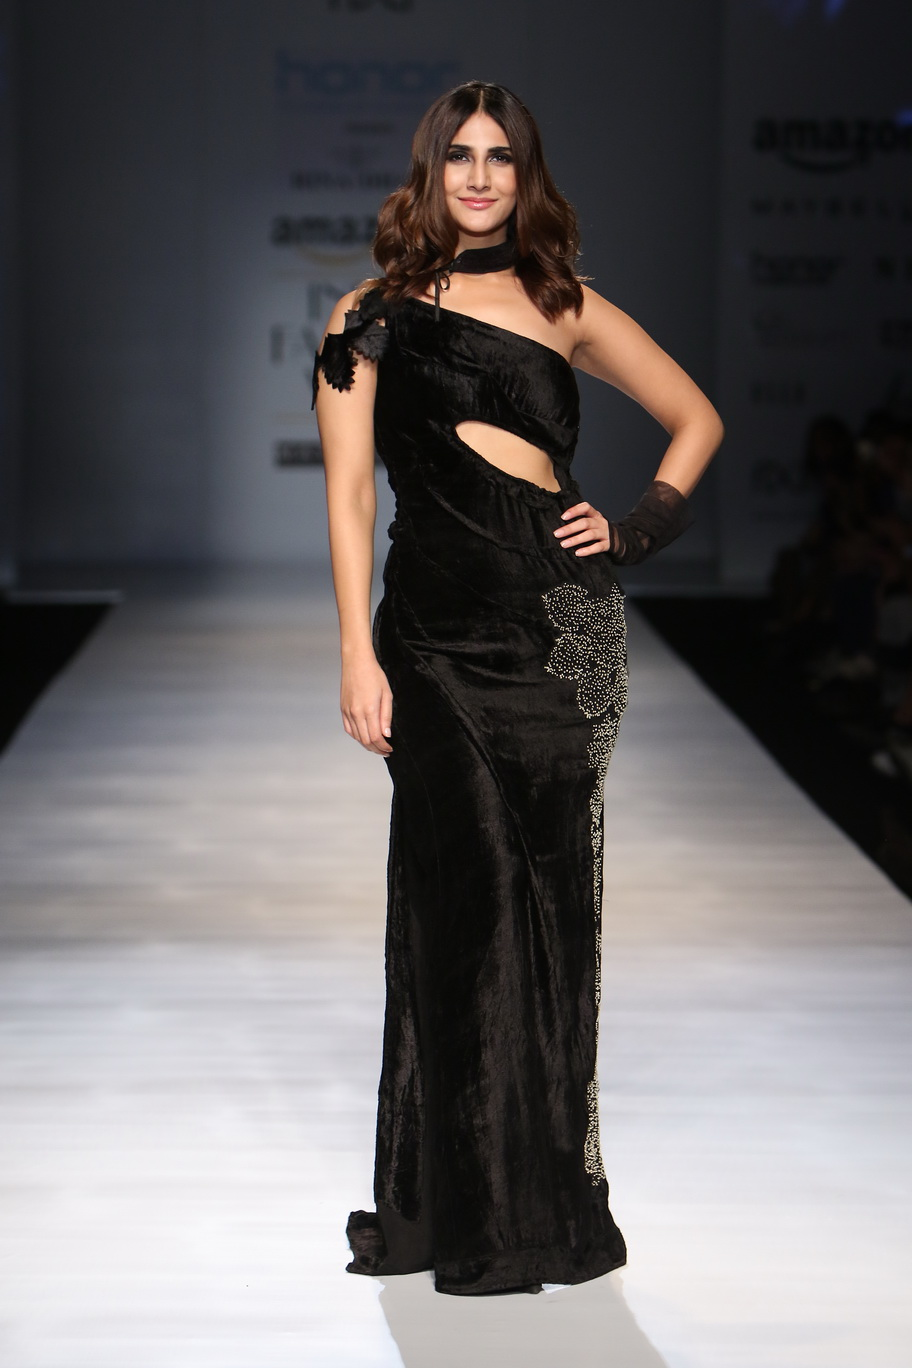 http://www.talksassy.com/wp-content/uploads/2017/03/Amazon-India-Fashion-Week-Autumn-Winter-2017-7.jpg